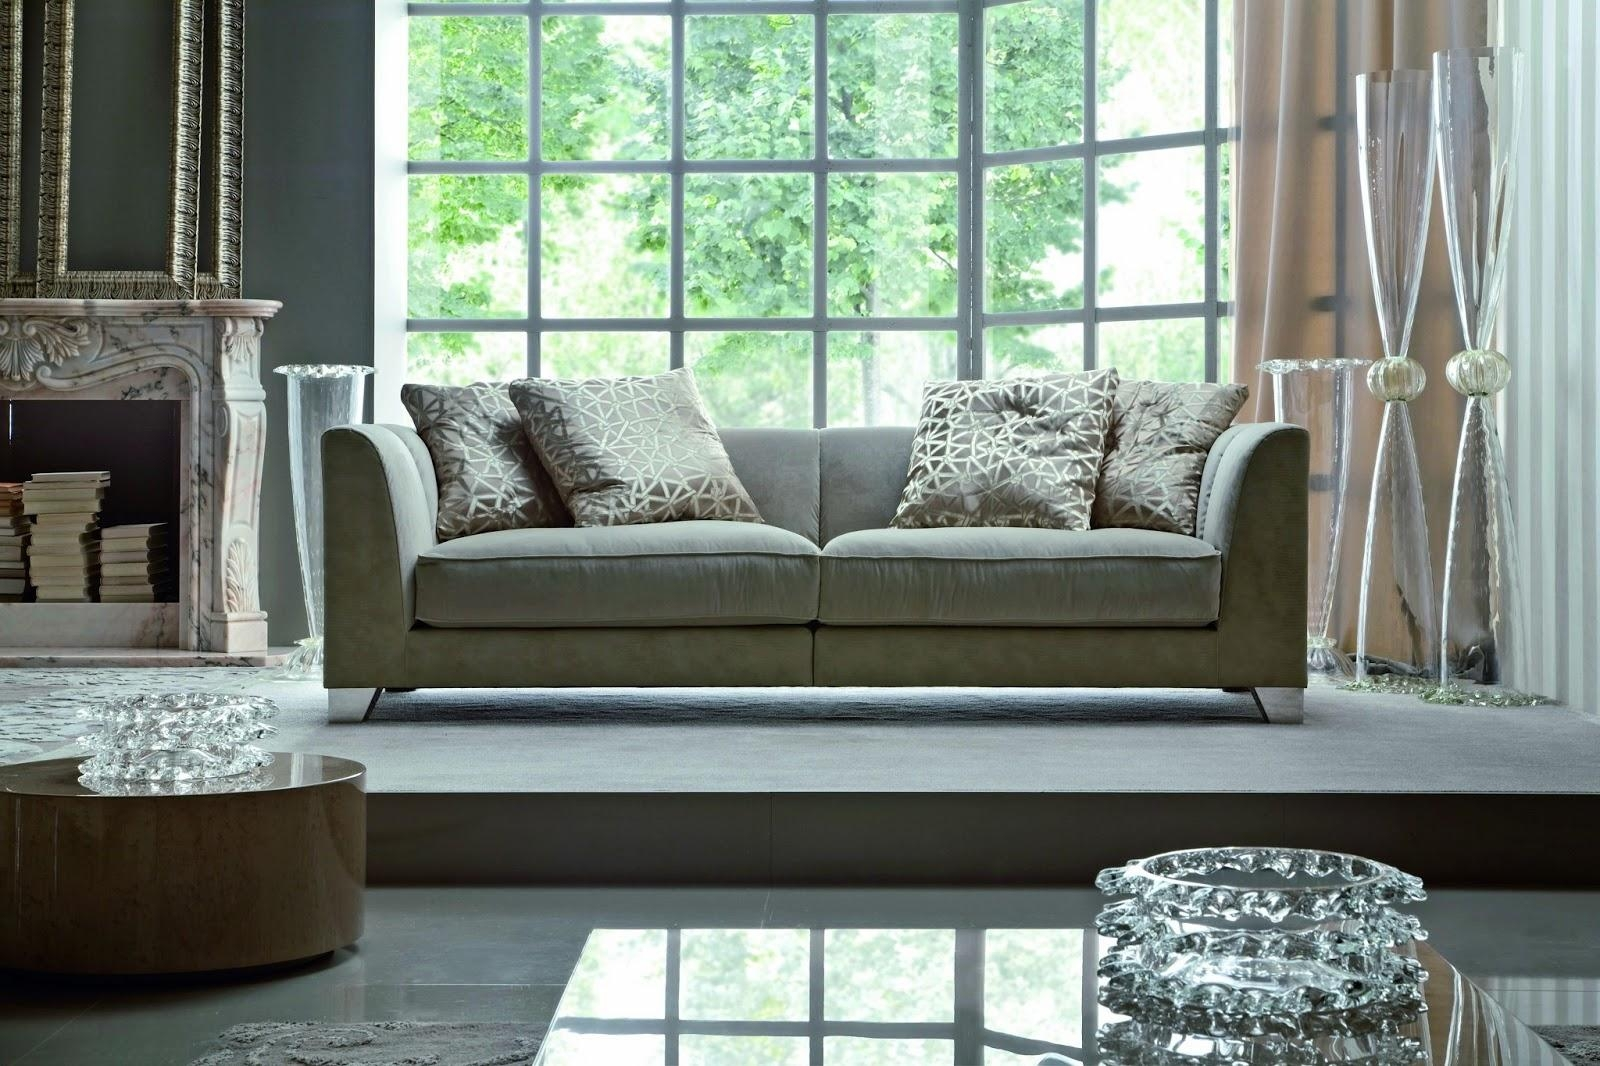 2013 Modern Living Room Sofas Furniture Design | Home Interiors For Elegant Sofas And Chairs (Image 3 of 20)